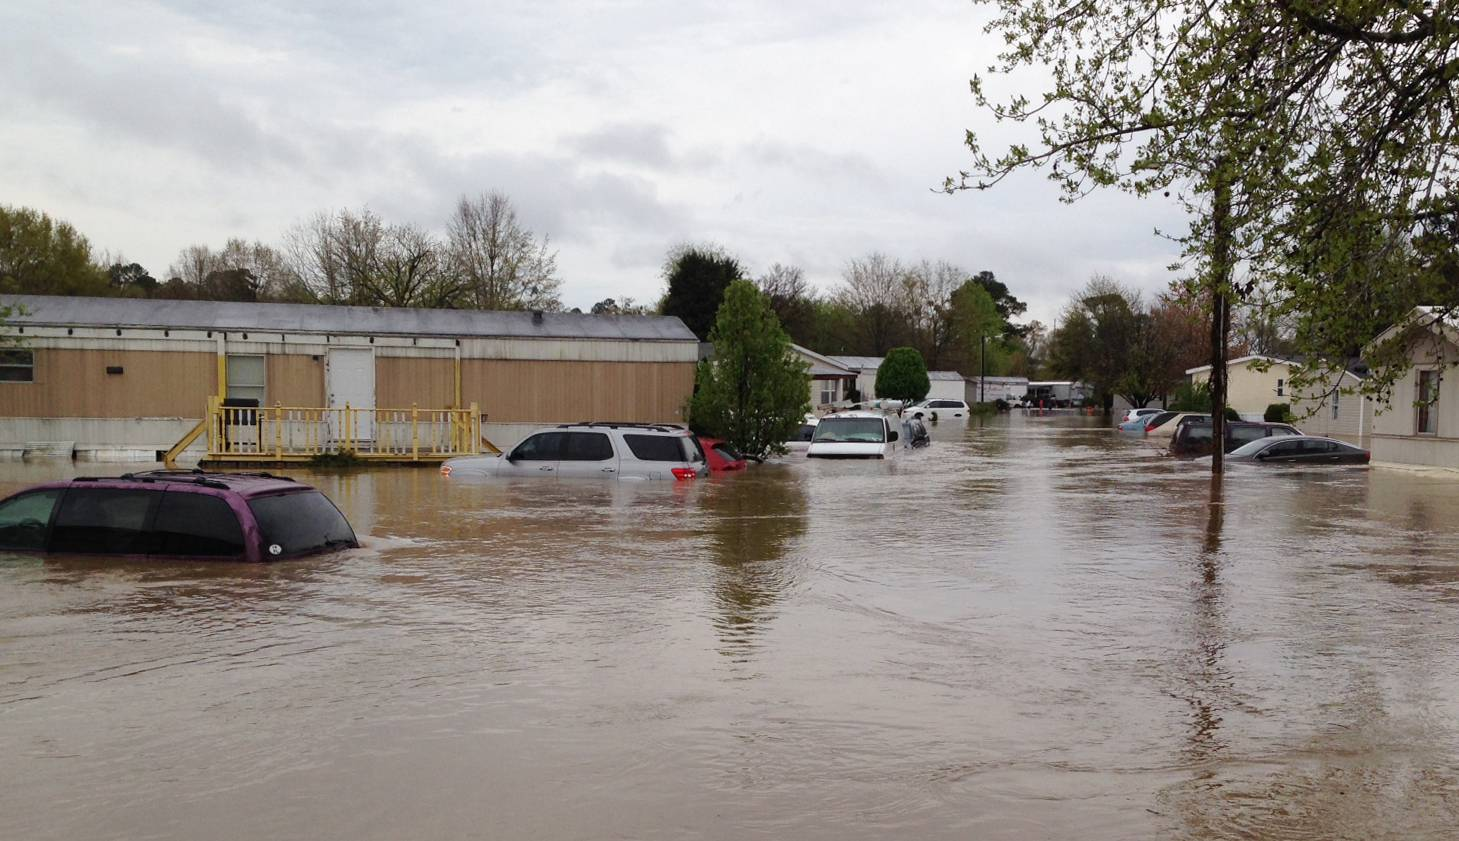 Flood waters cover a street in a mobile home park in Pelham, Ala., on Monday, April 7, 2014. Police and firefighters rescued about a dozen people who were trapped by muddy, fast-moving water after storms dumped torrential rains in central Alabama.